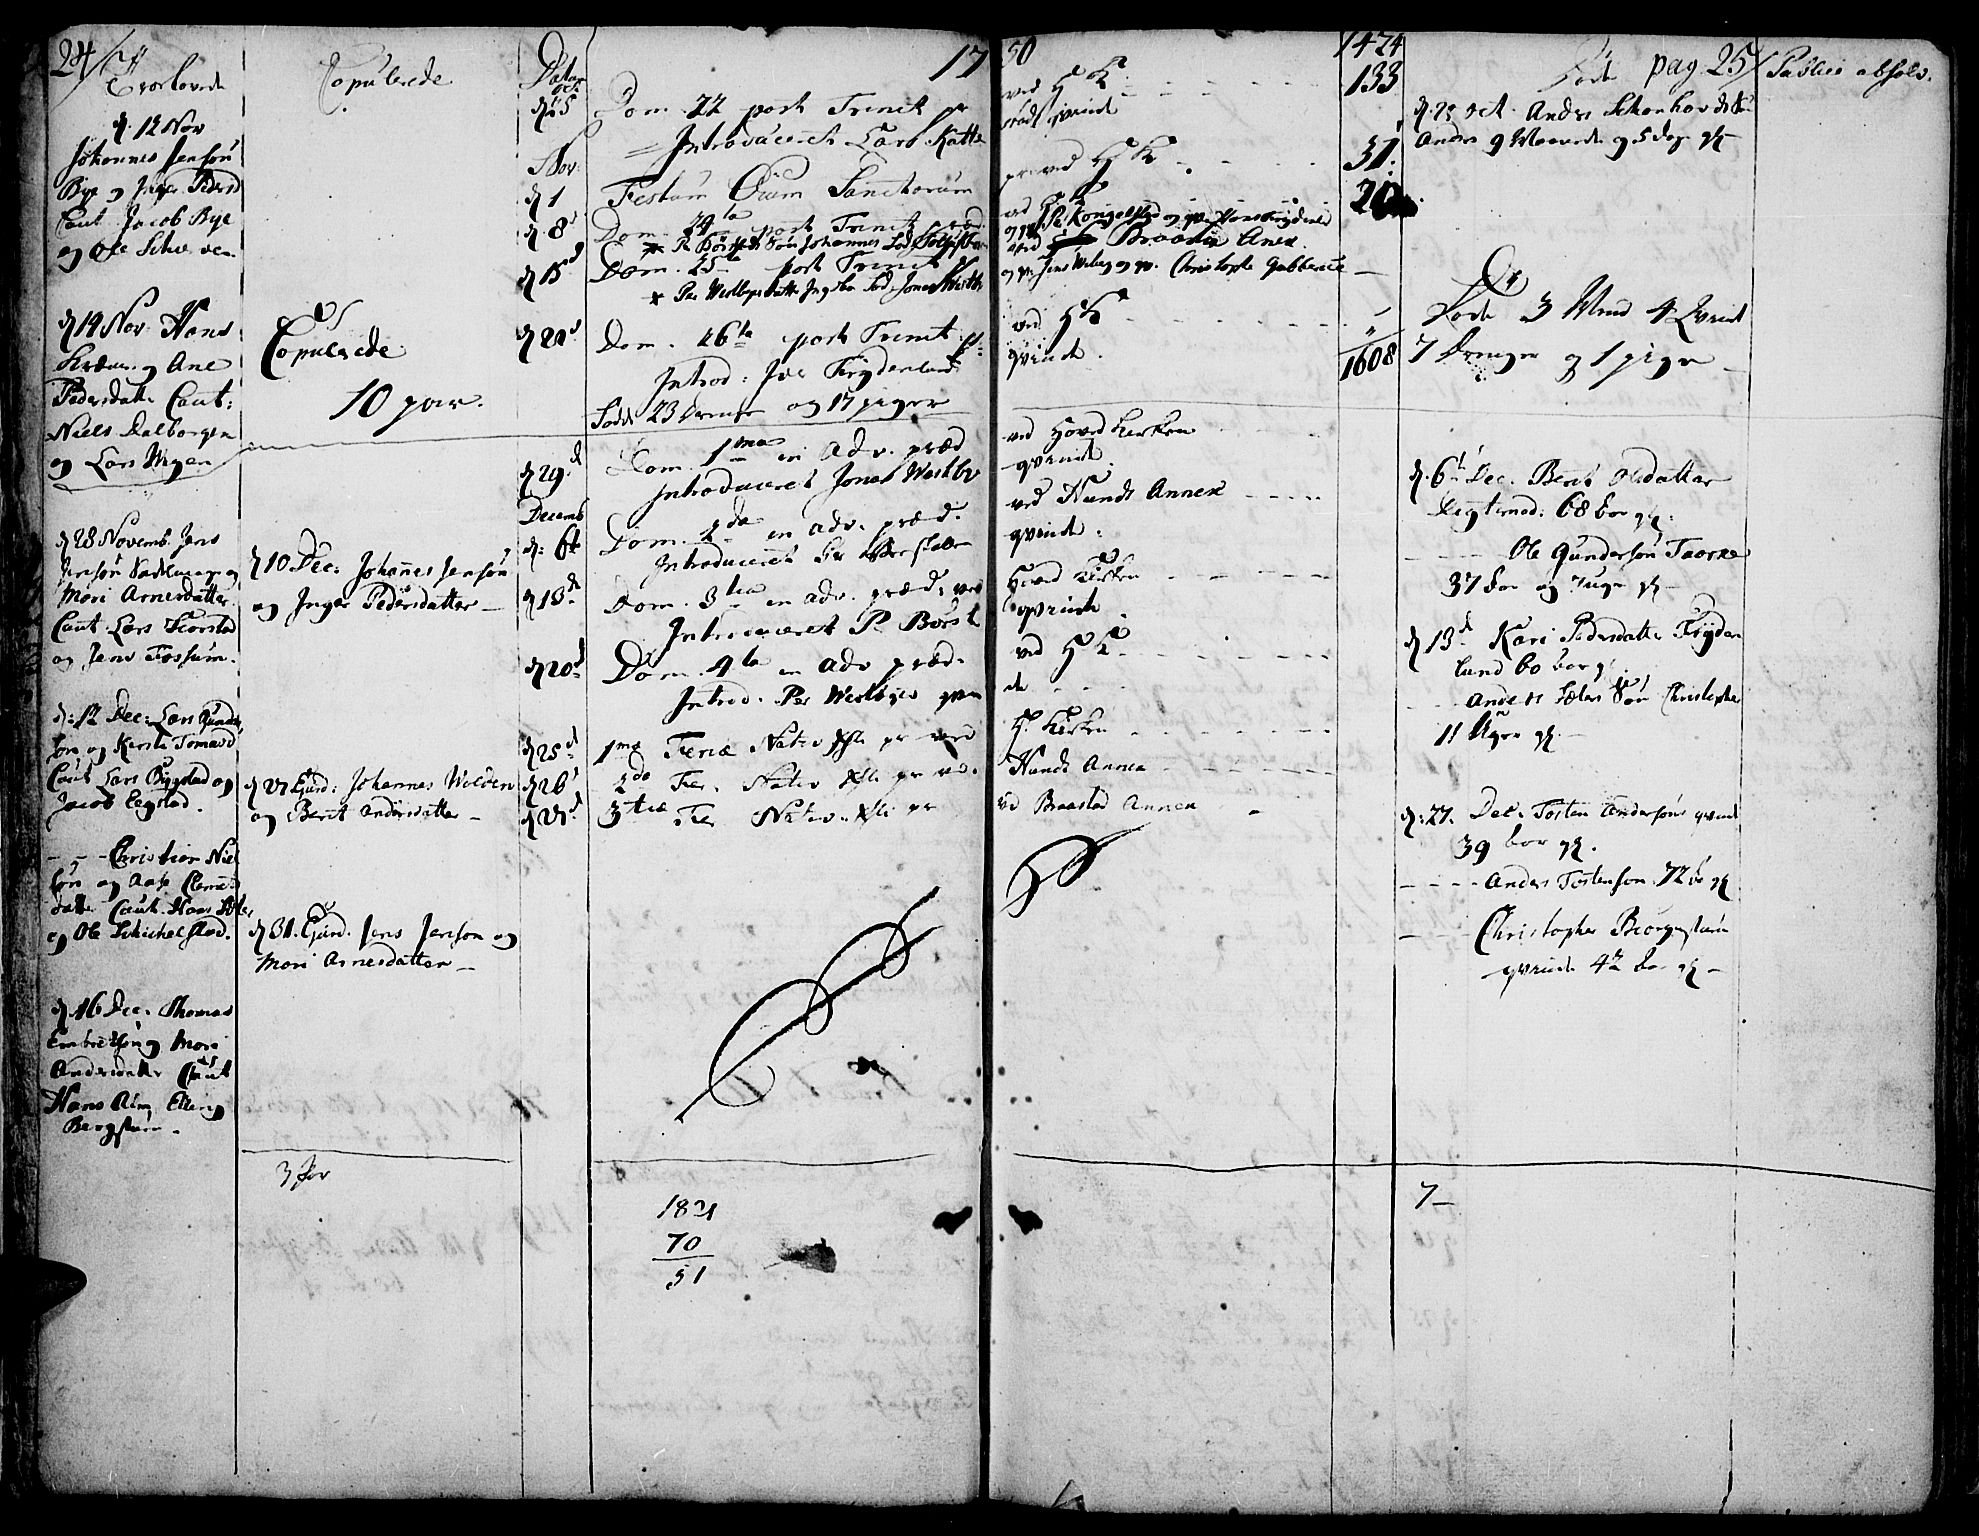 SAH, Vardal prestekontor, H/Ha/Haa/L0002: Parish register (official) no. 2, 1748-1776, p. 24-25